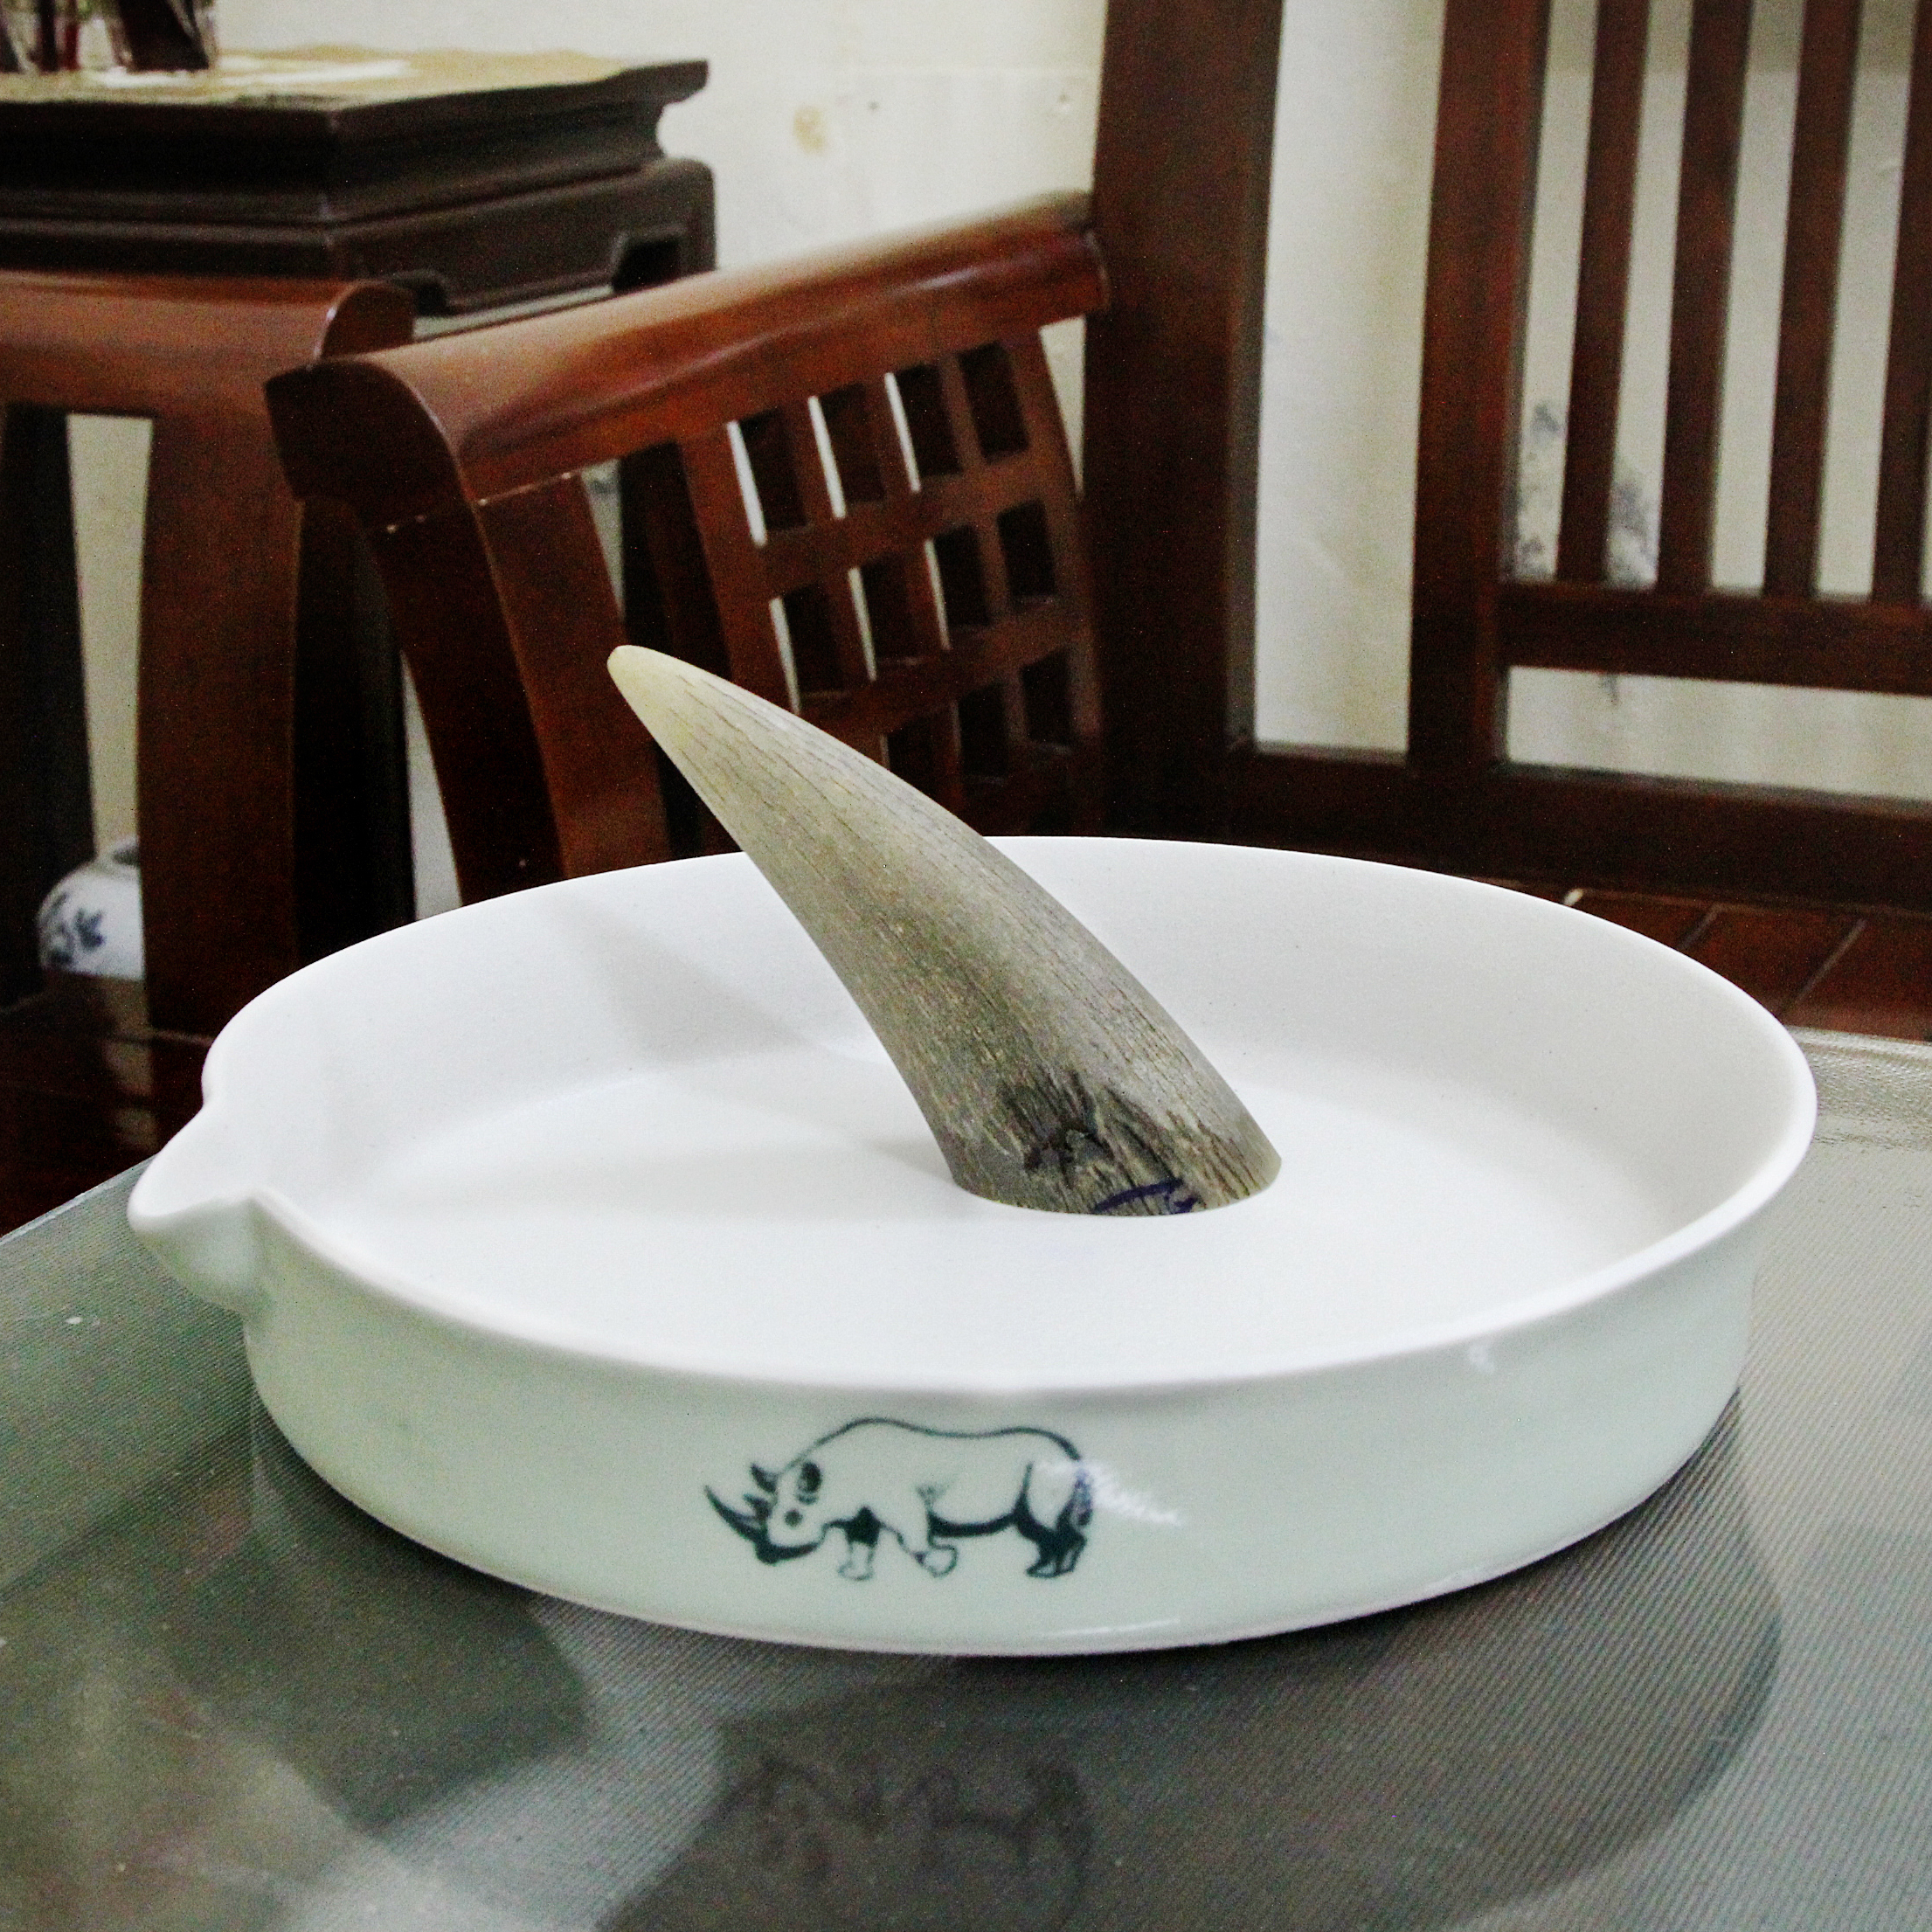 A rhino horn in a grinding bowl in a Hanoi home.